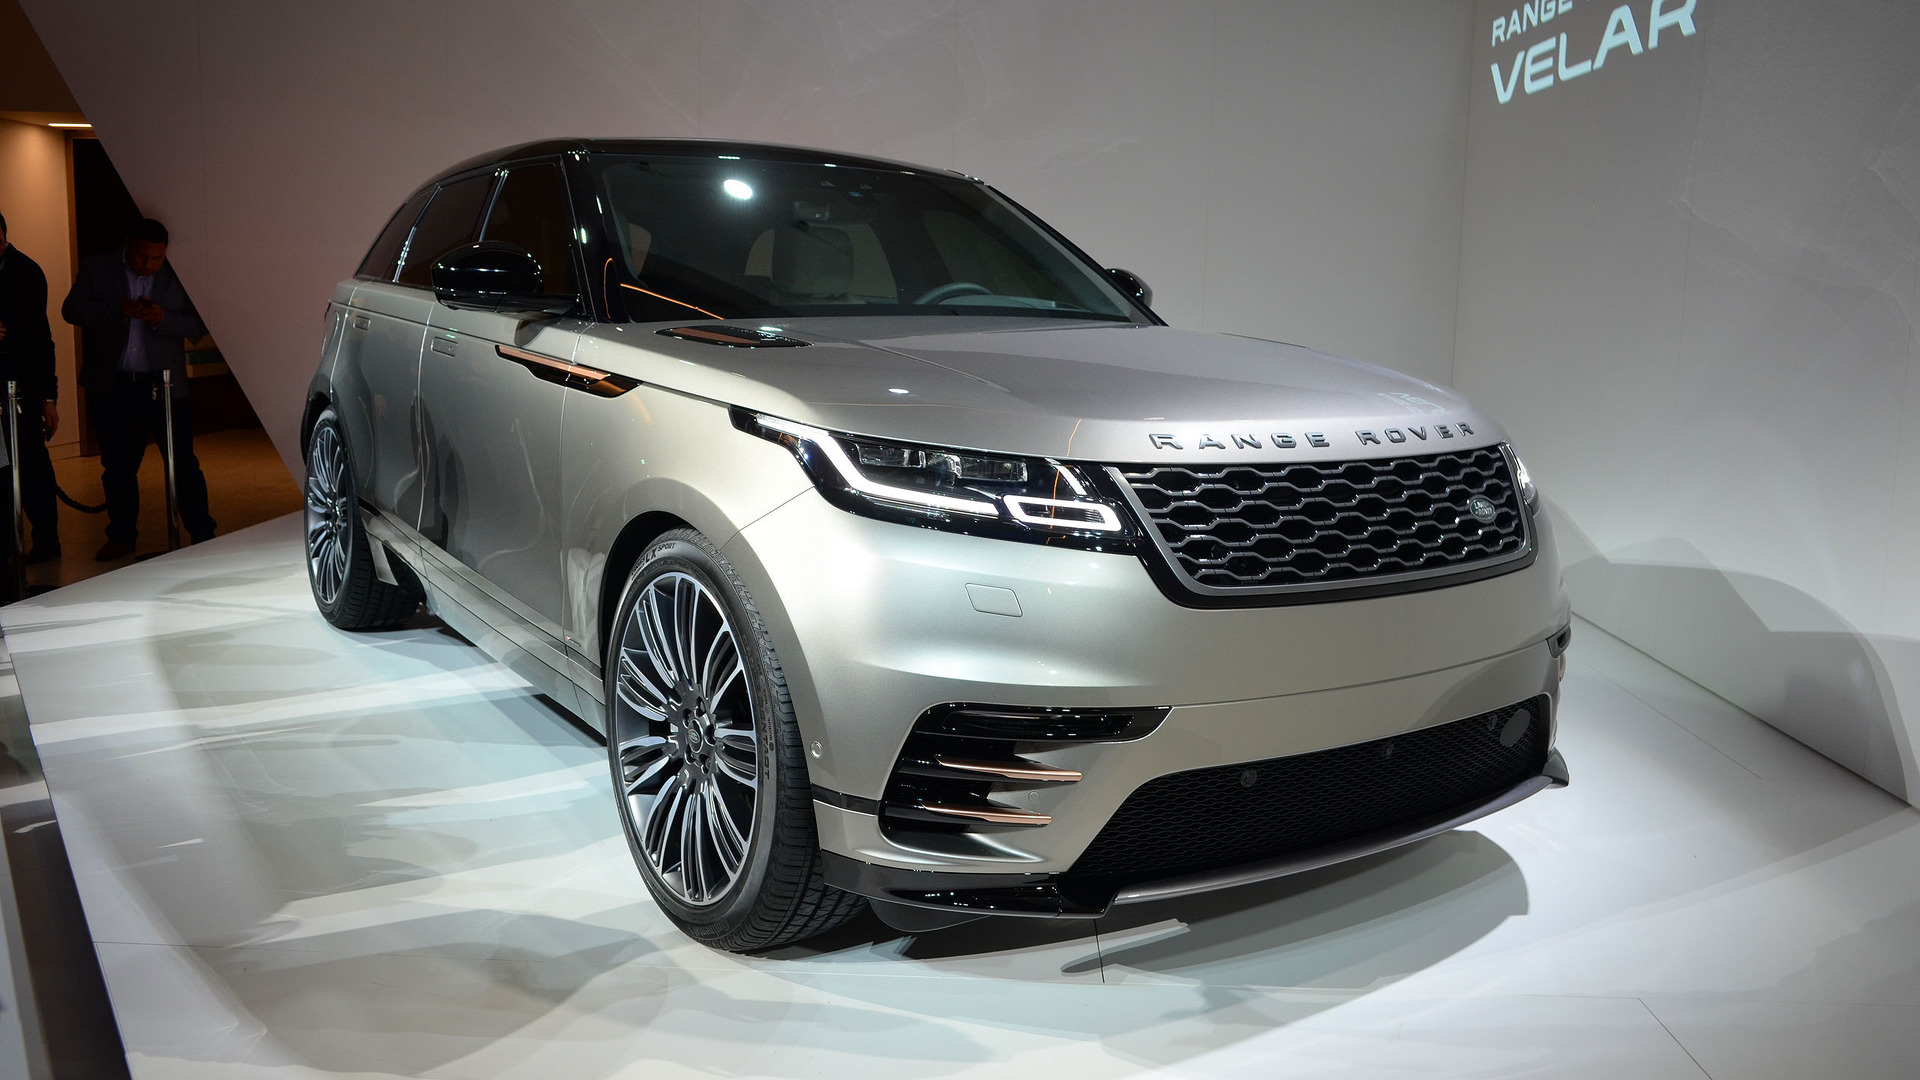 land rover range rover velar coupe suv arrives this summer for 50 895. Black Bedroom Furniture Sets. Home Design Ideas